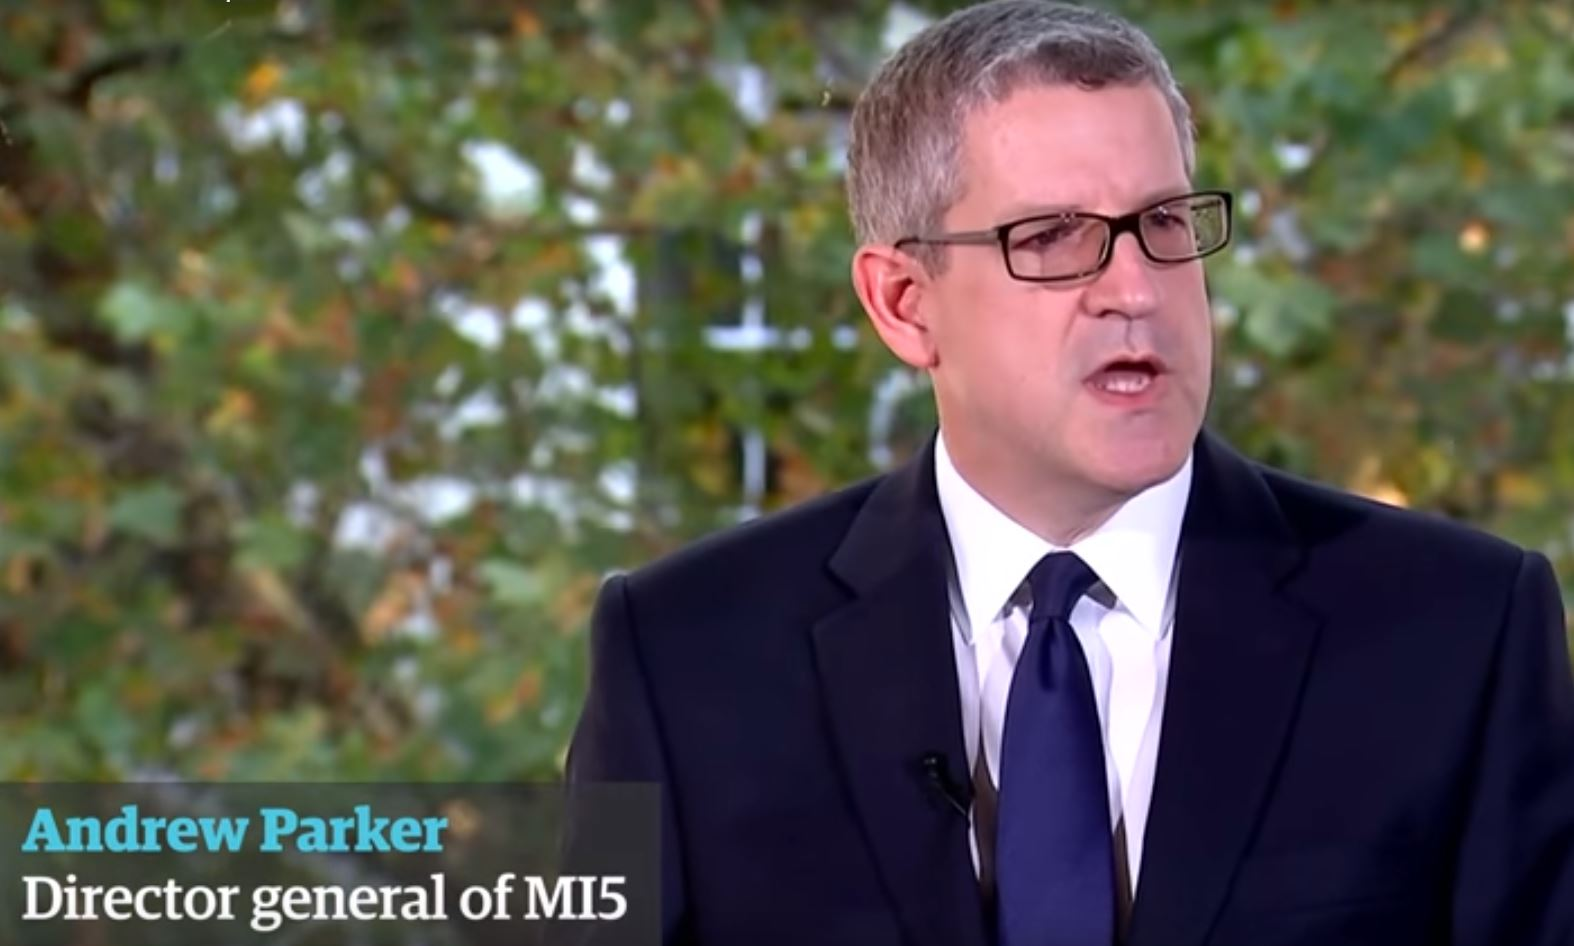 MI5's chief Andrew Parker warns UK to face fresh attacks the most severe terror threat ever from Islamic Extremists.